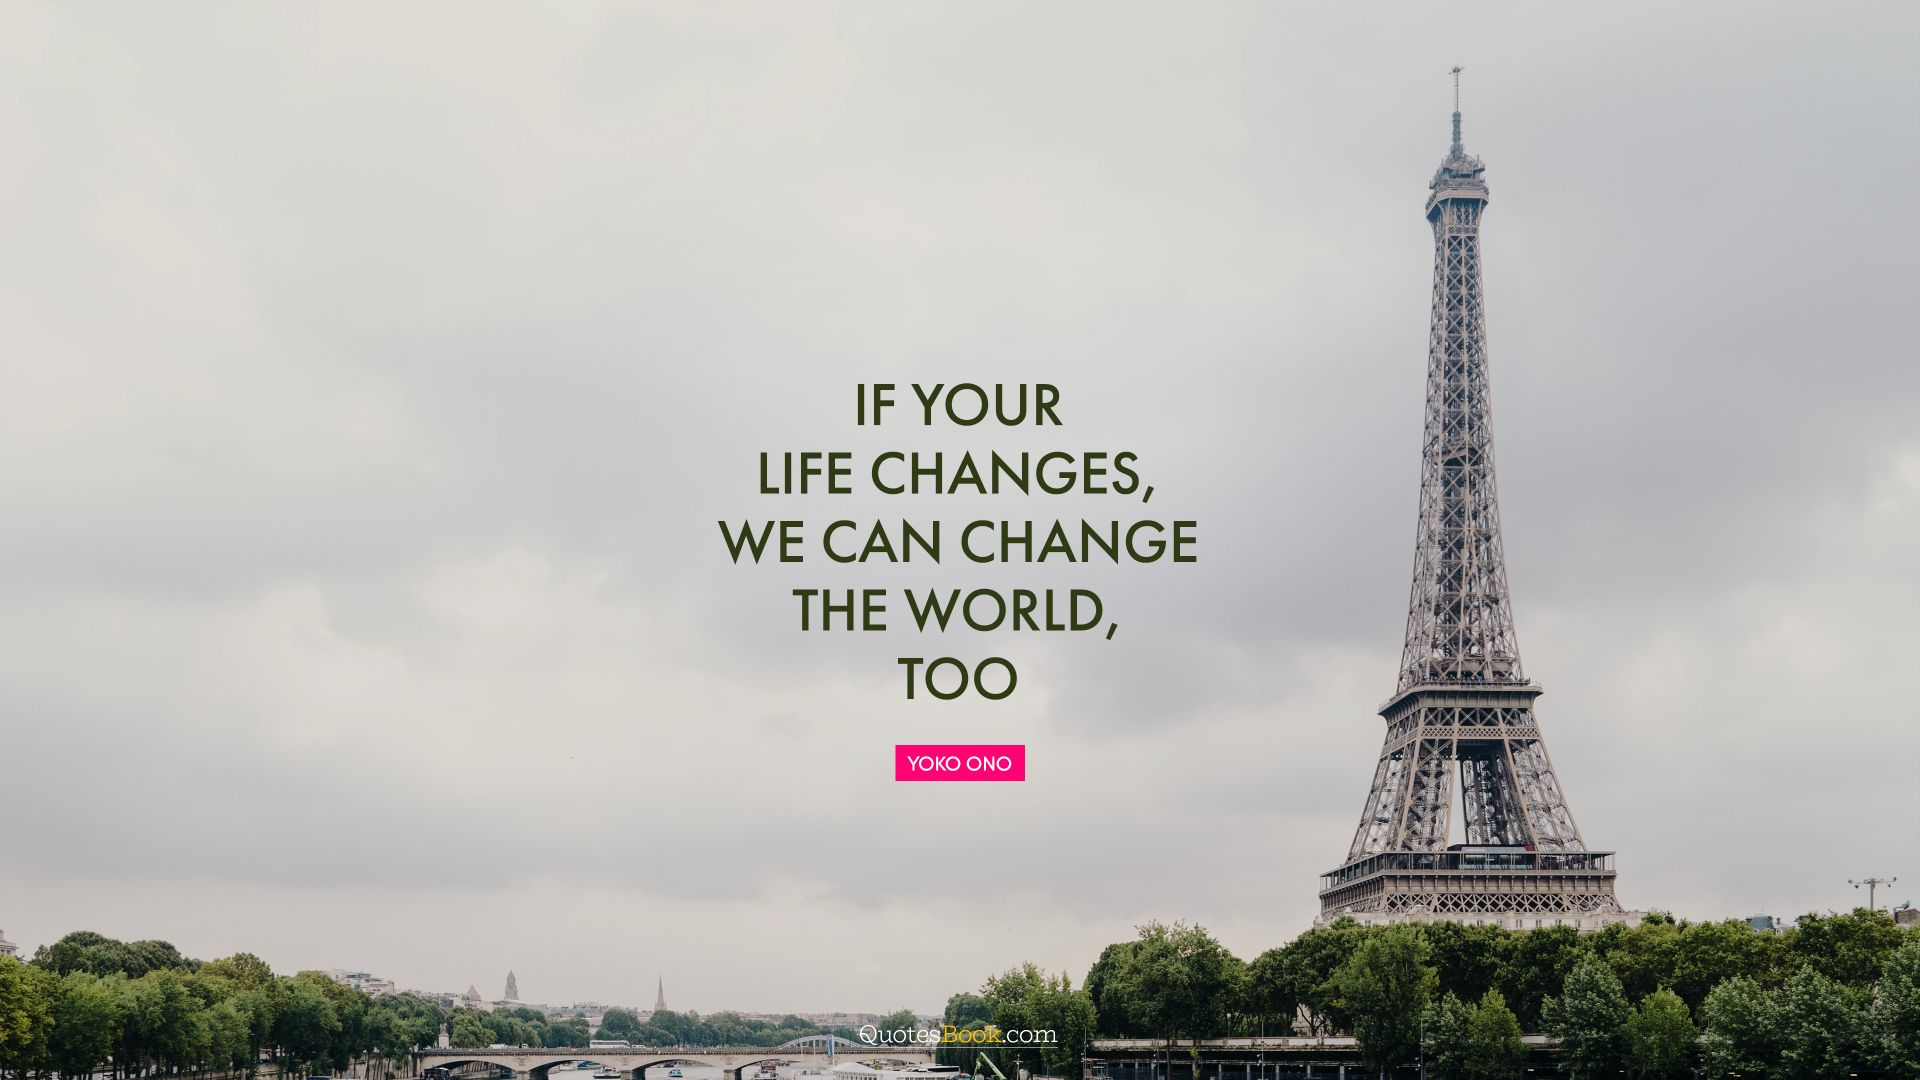 If your life changes, we can change the world, too. - Quote by Yoko Ono